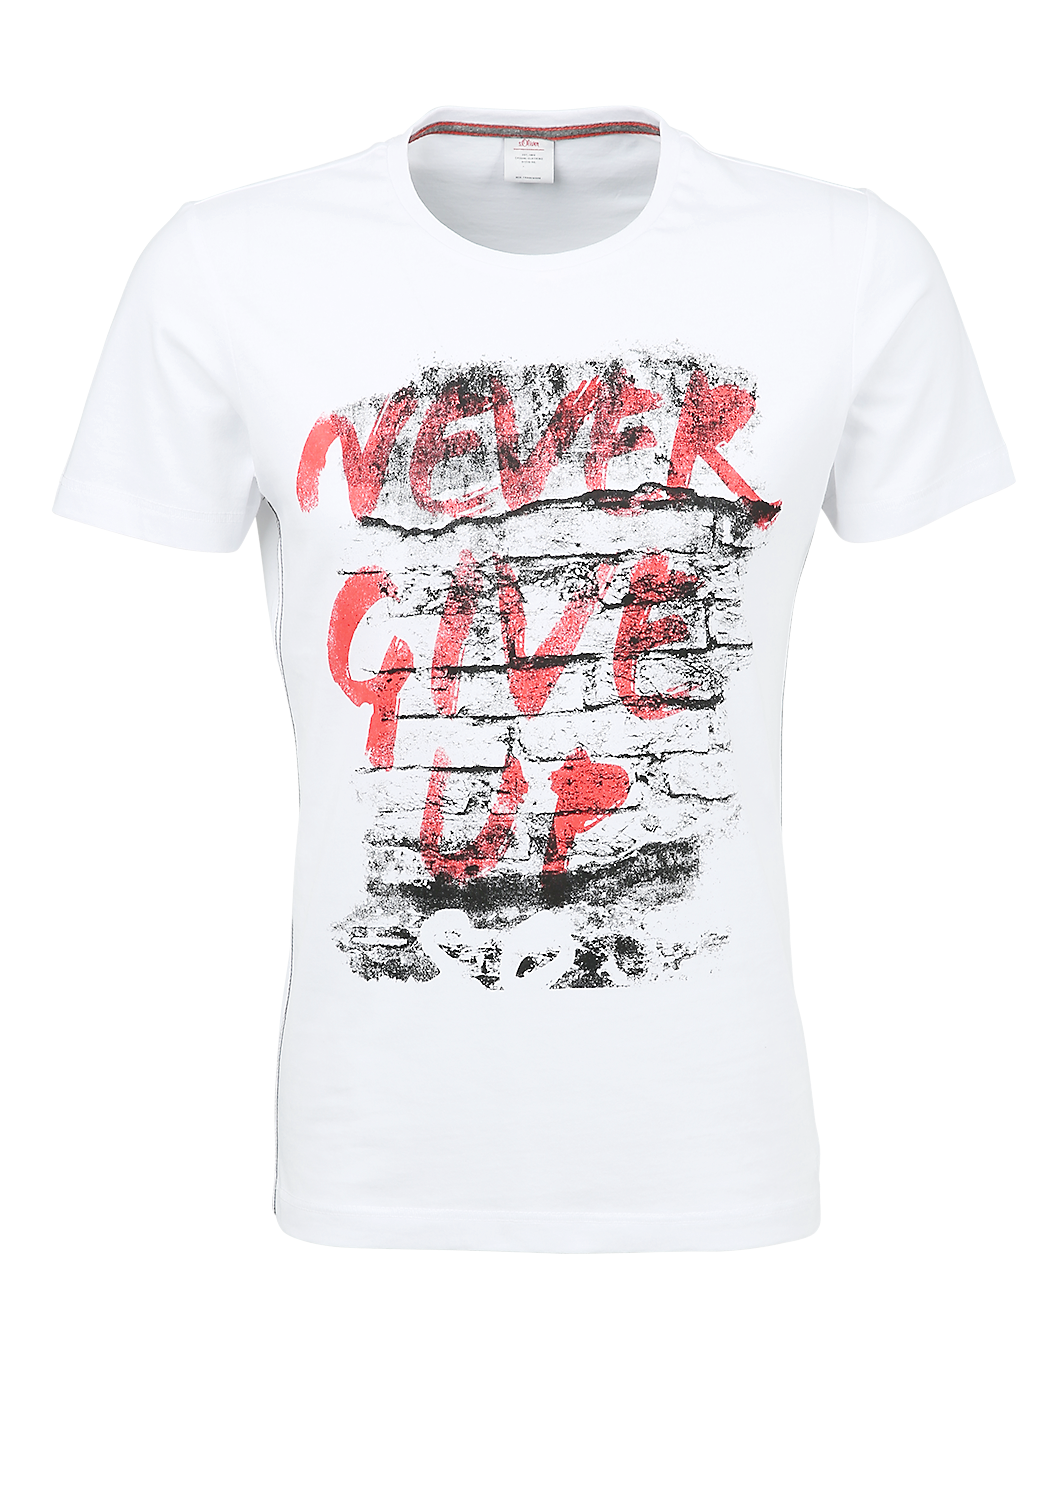 Buy Nyc T Shirt With A Flock Print S Oliver Shop T Shirt Buy Clothes Cool Graphic Tees